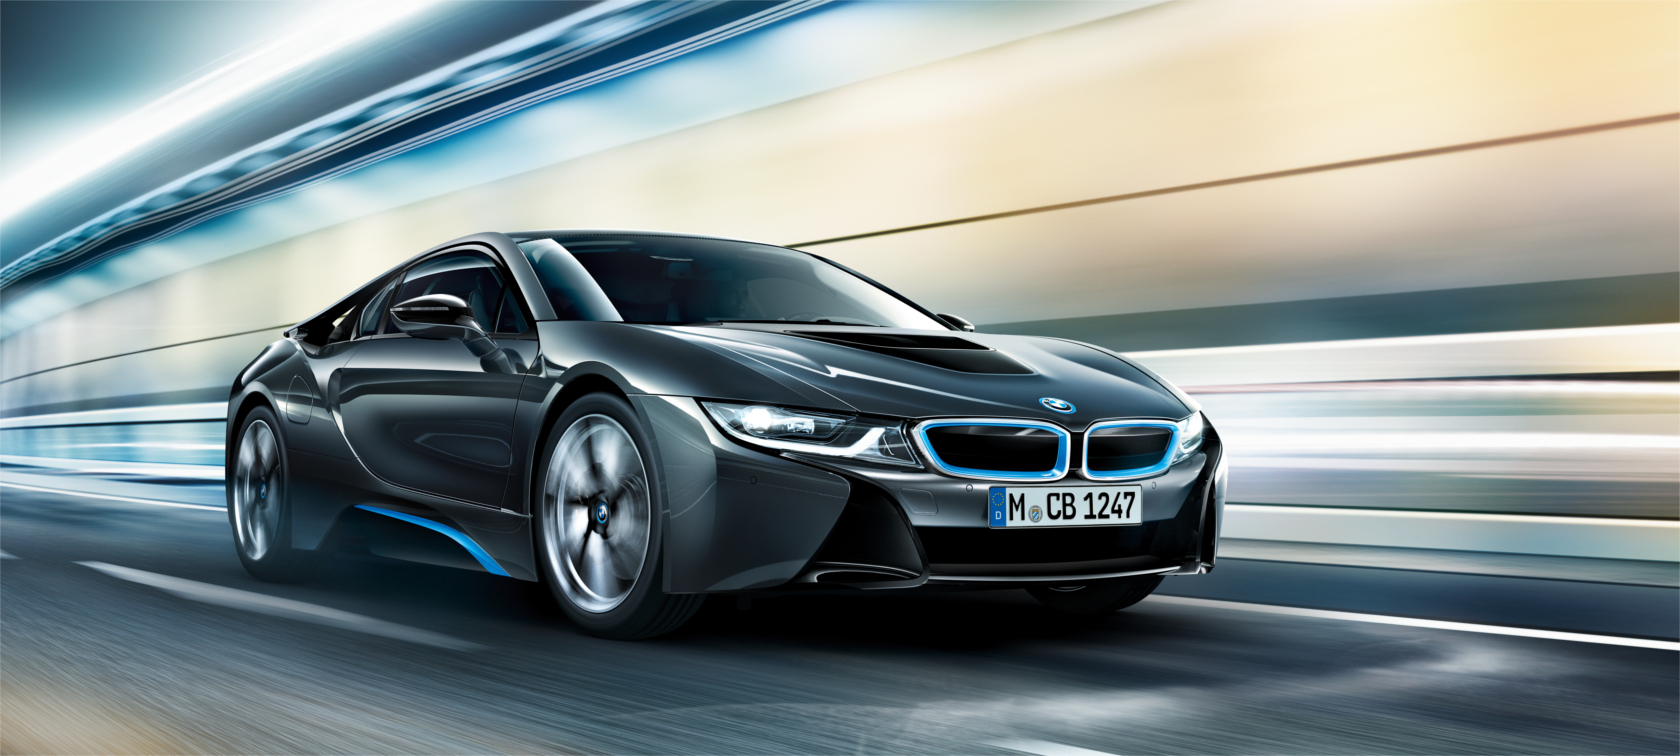 The design of the BMW i8